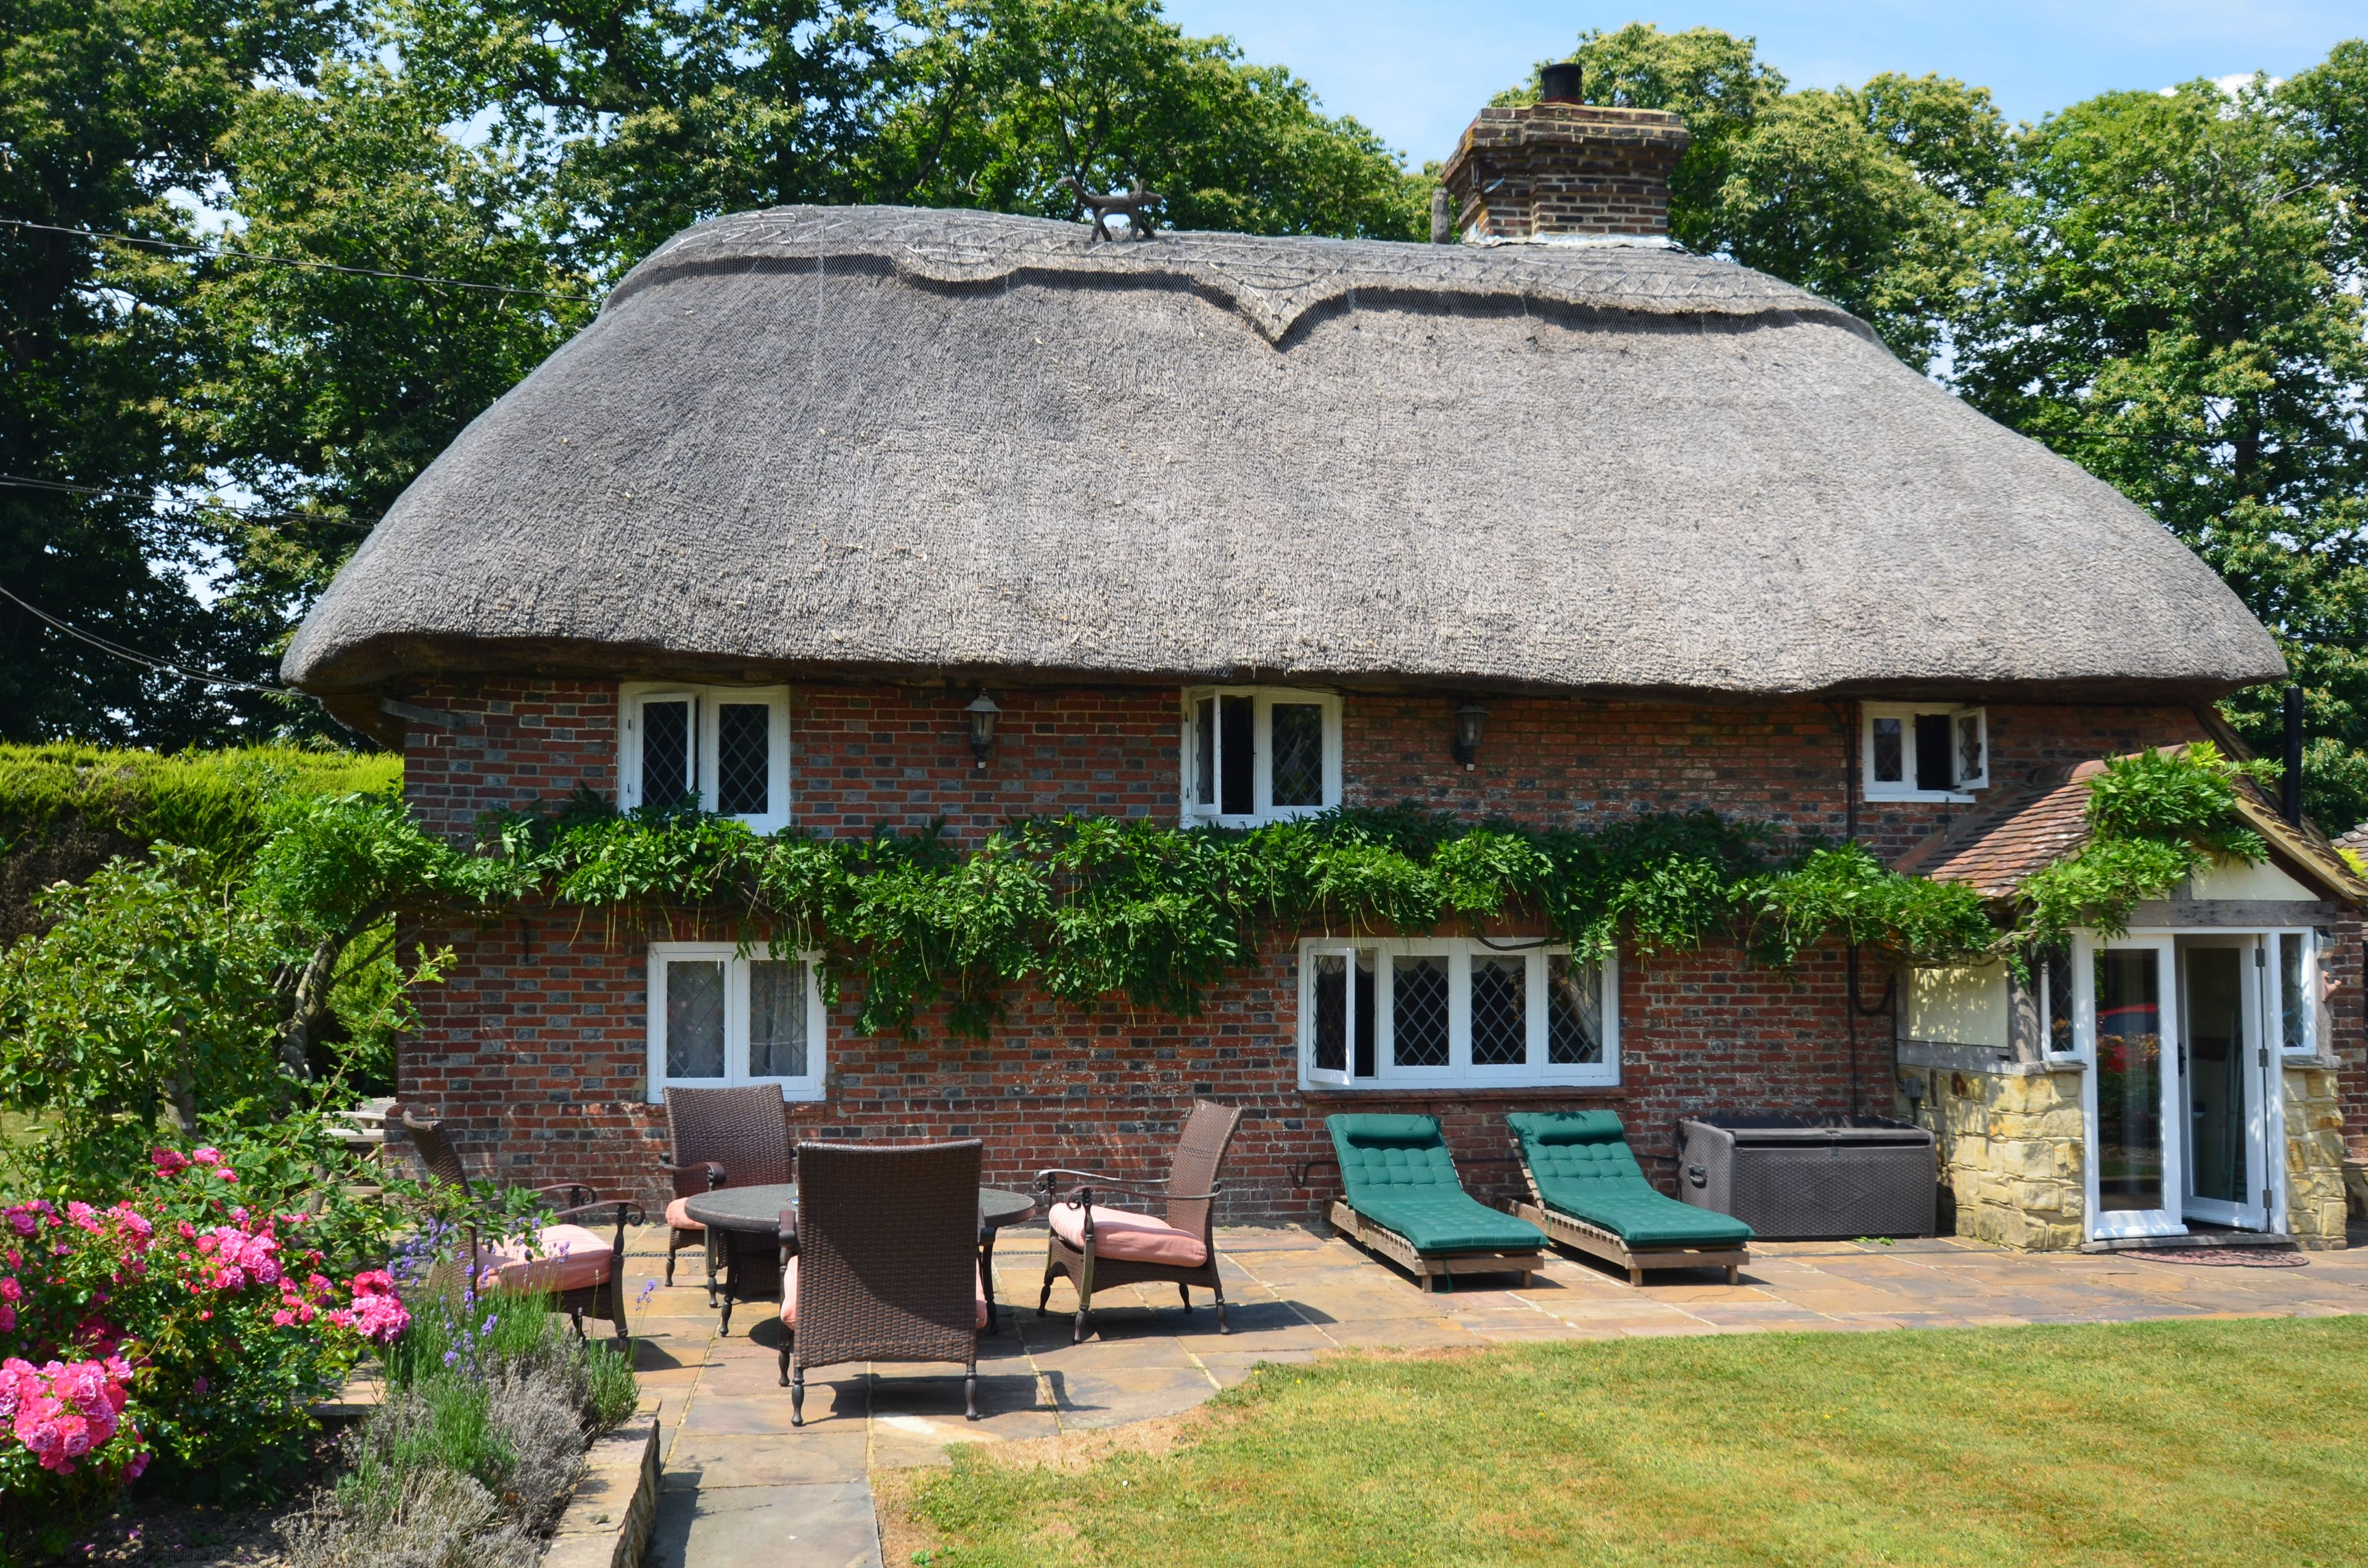 The Thatched Cottage, Stevens Crouch near Battle